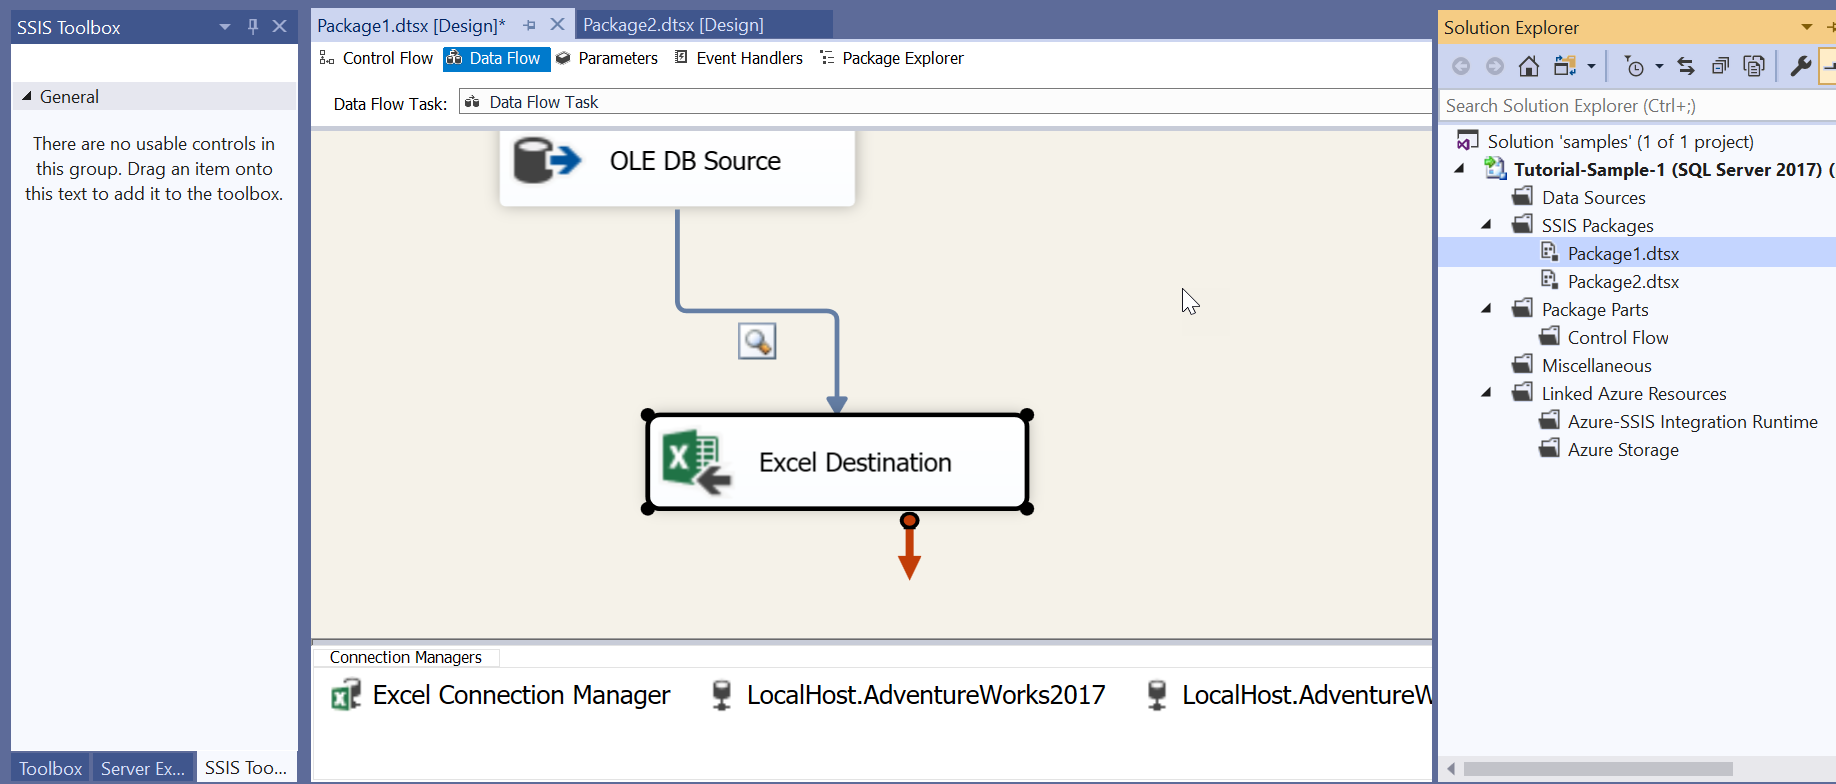 SSIS ToolBox is empty